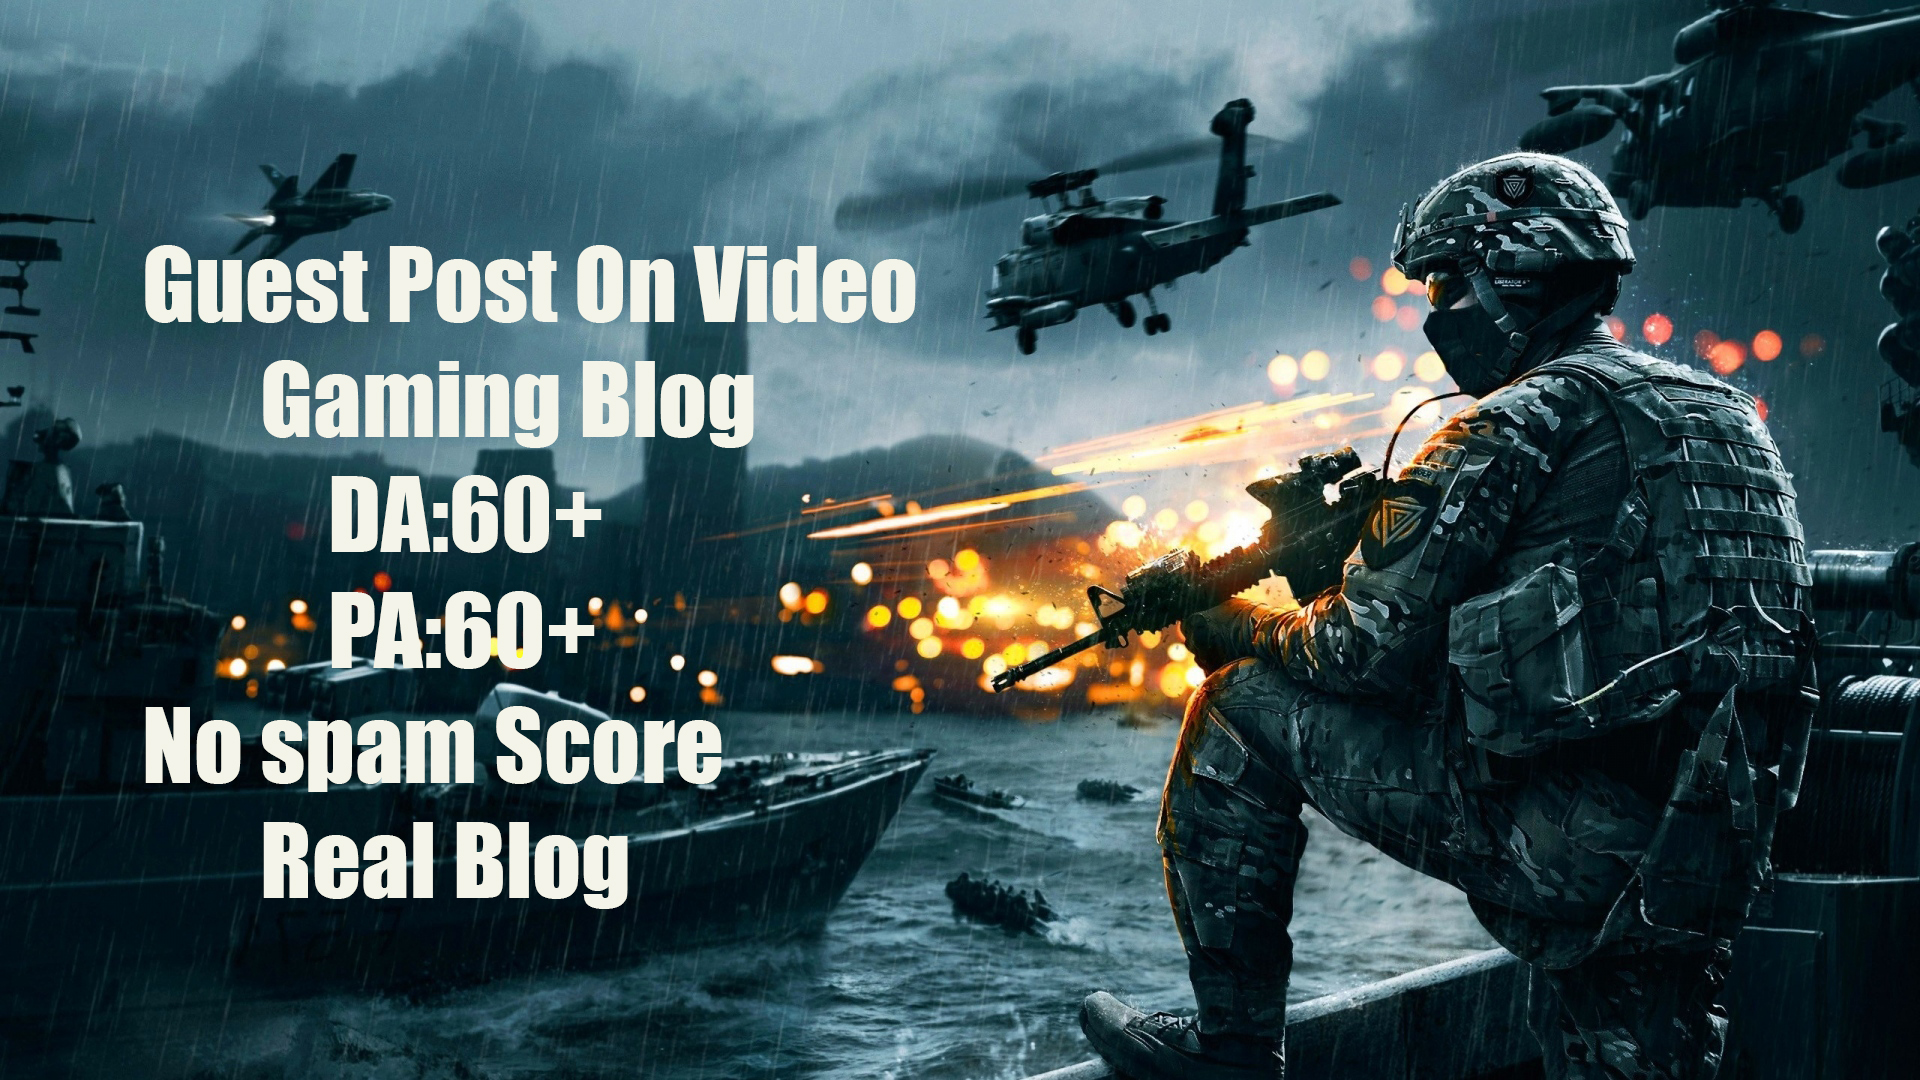 Guest Post on HQ Video Gaming Blog of DA:60+